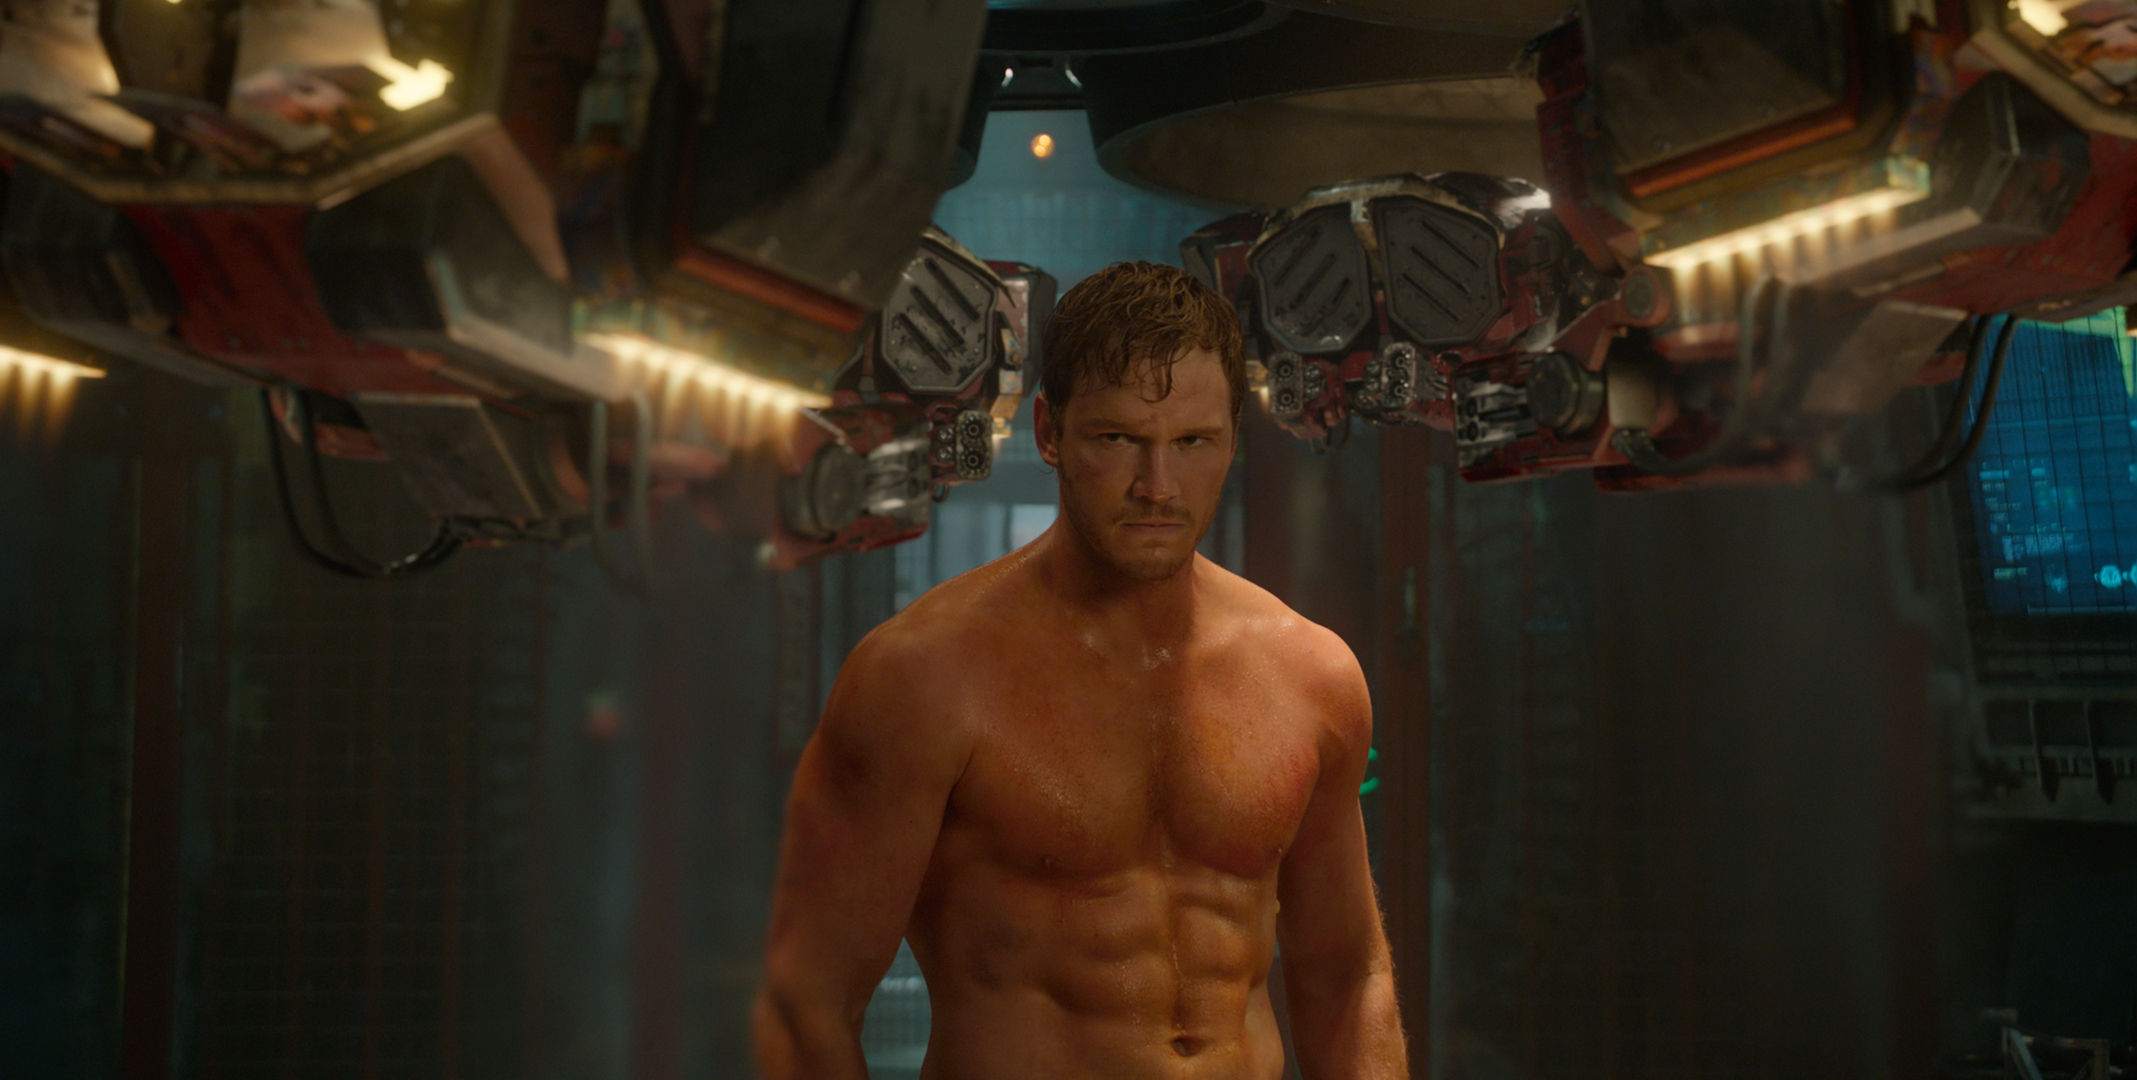 Guardians of the Galaxy Official Photo Chris Pratt Workout New Guardians of the Galaxy Image; Chris Pratt & James Gunn Talk Star Lord